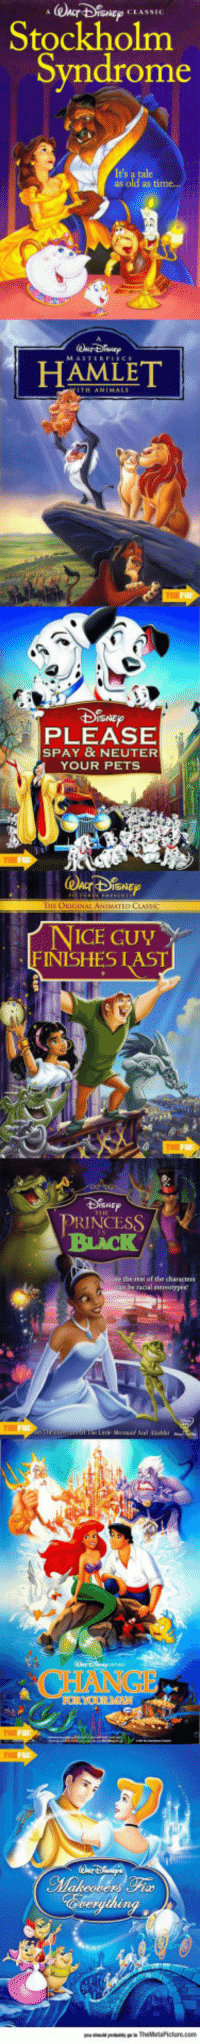 """<p><a href=""""http://laughoutloud-club.tumblr.com/post/166252210764/alternate-disney-film-titles-that-work-better"""" class=""""tumblr_blog"""">laughoutloud-club</a>:</p>  <blockquote><p>Alternate Disney Film Titles That Work Better</p></blockquote>: Stockholm  Syndrome  It's a tale  as old as  HAMLET  7  PLEASE  SPAY & NEUTER  YOUR PETS  ICE GUY  RINCES <p><a href=""""http://laughoutloud-club.tumblr.com/post/166252210764/alternate-disney-film-titles-that-work-better"""" class=""""tumblr_blog"""">laughoutloud-club</a>:</p>  <blockquote><p>Alternate Disney Film Titles That Work Better</p></blockquote>"""